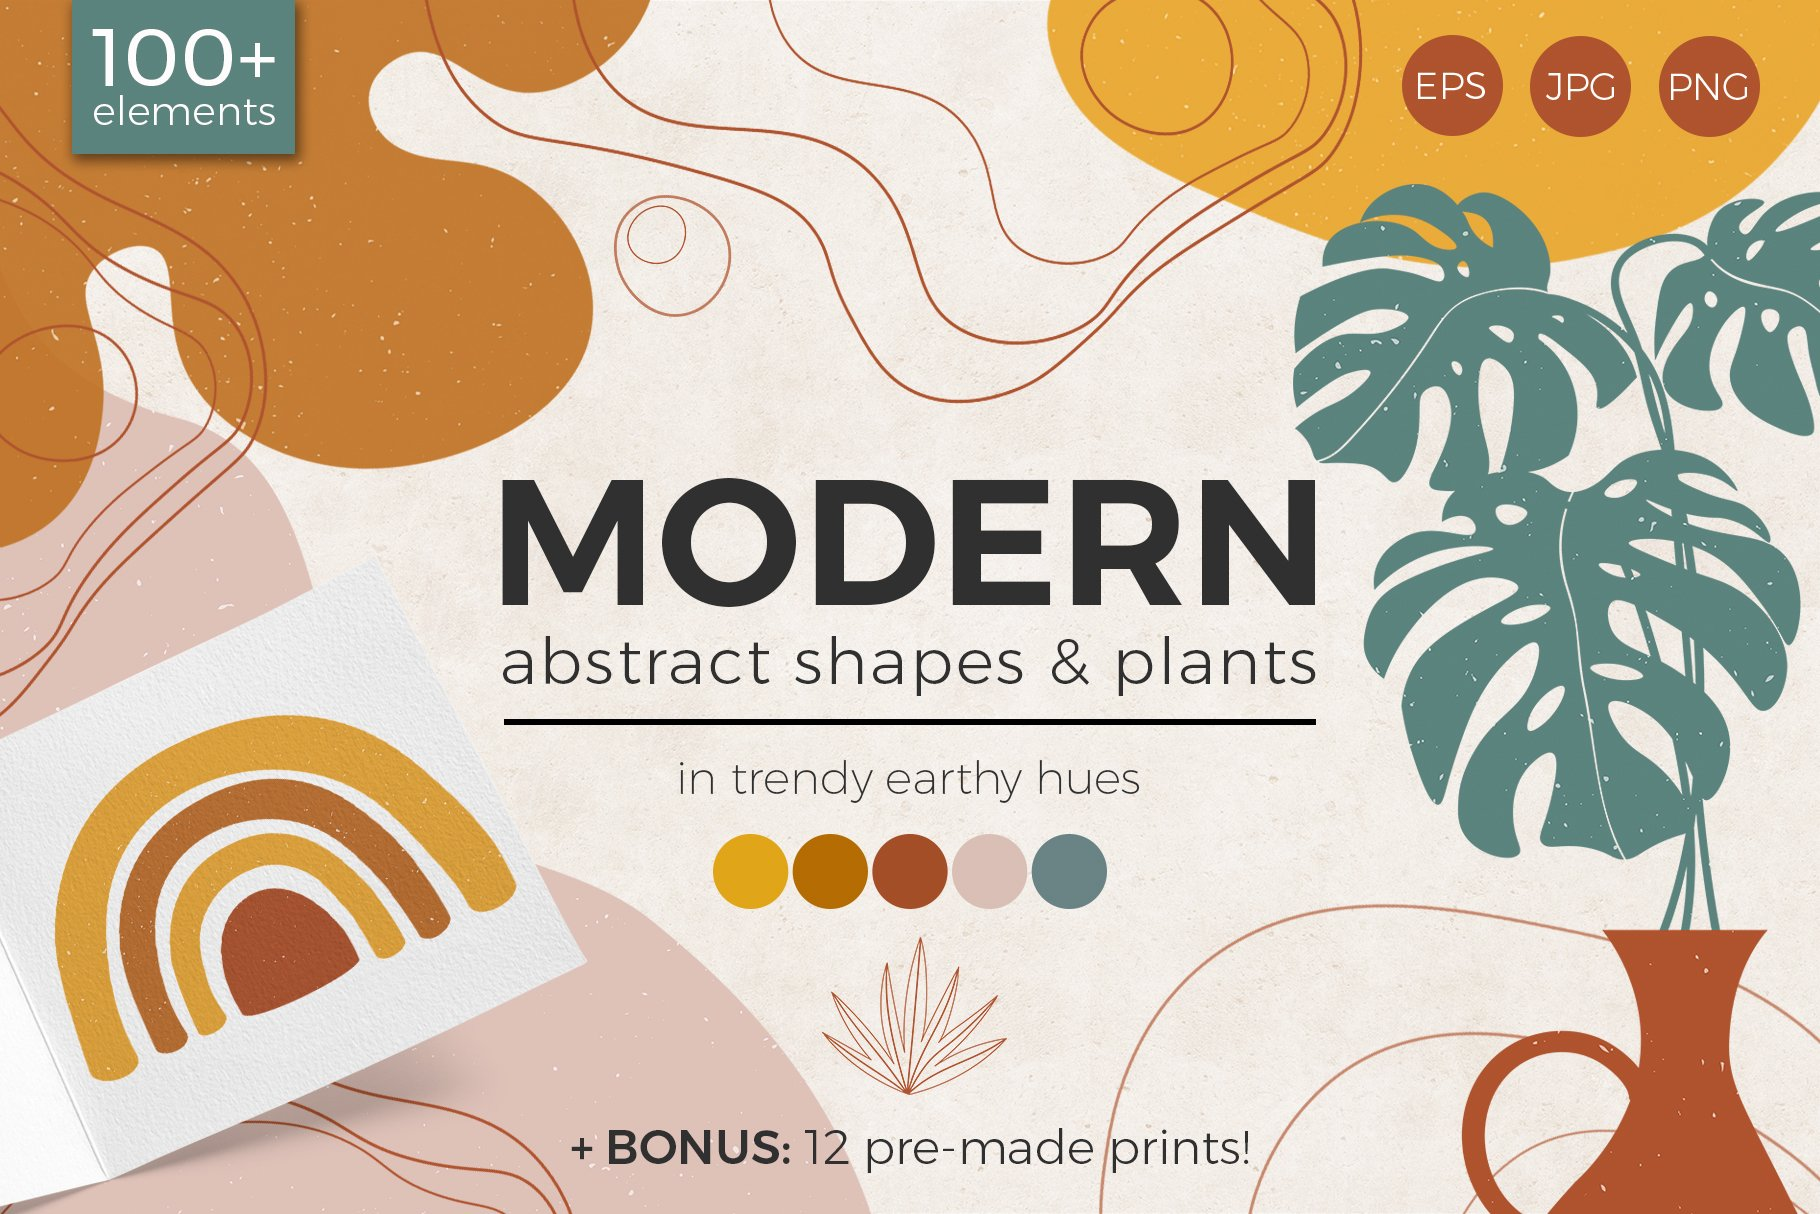 Modern Abstract Shapes And Plants 311841 Illustrations Design Bundles You can download abstract shapes posters and flyers templates,abstract shapes backgrounds,banners,illustrations and graphics image in psd and vectors for free. modern abstract shapes and plants